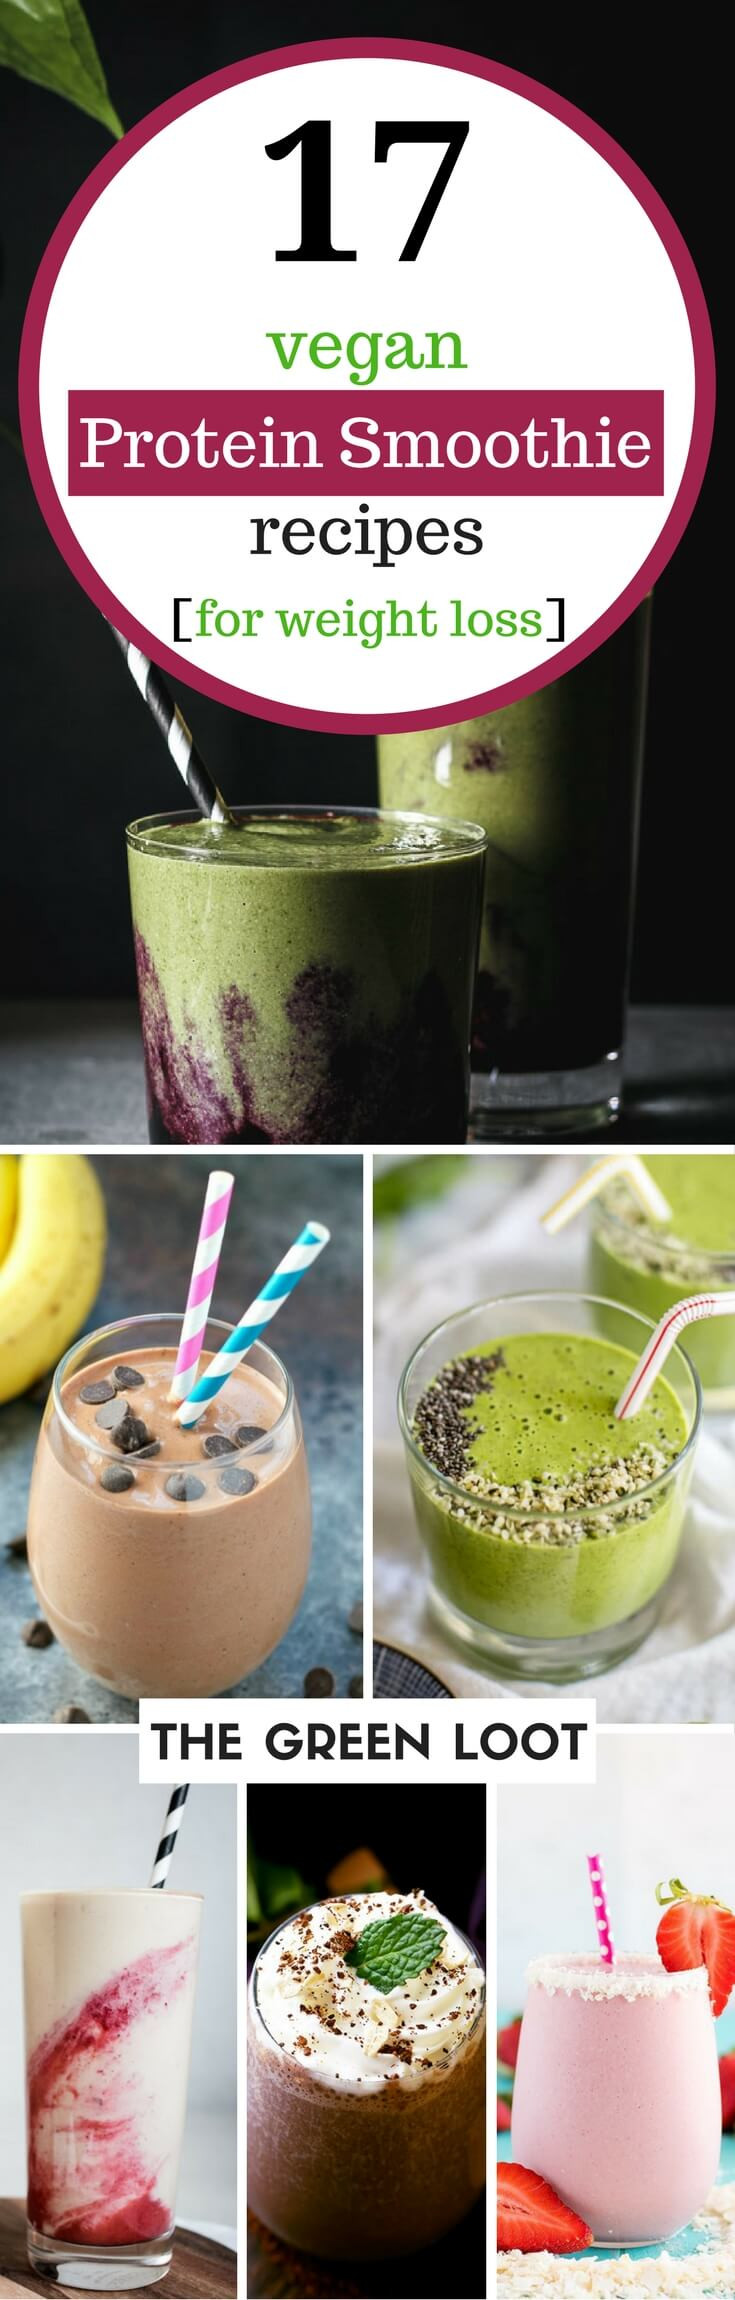 Healthy Vegan Recipes For Weight Loss  17 Tasty Vegan Protein Smoothie Recipes for Weight Loss